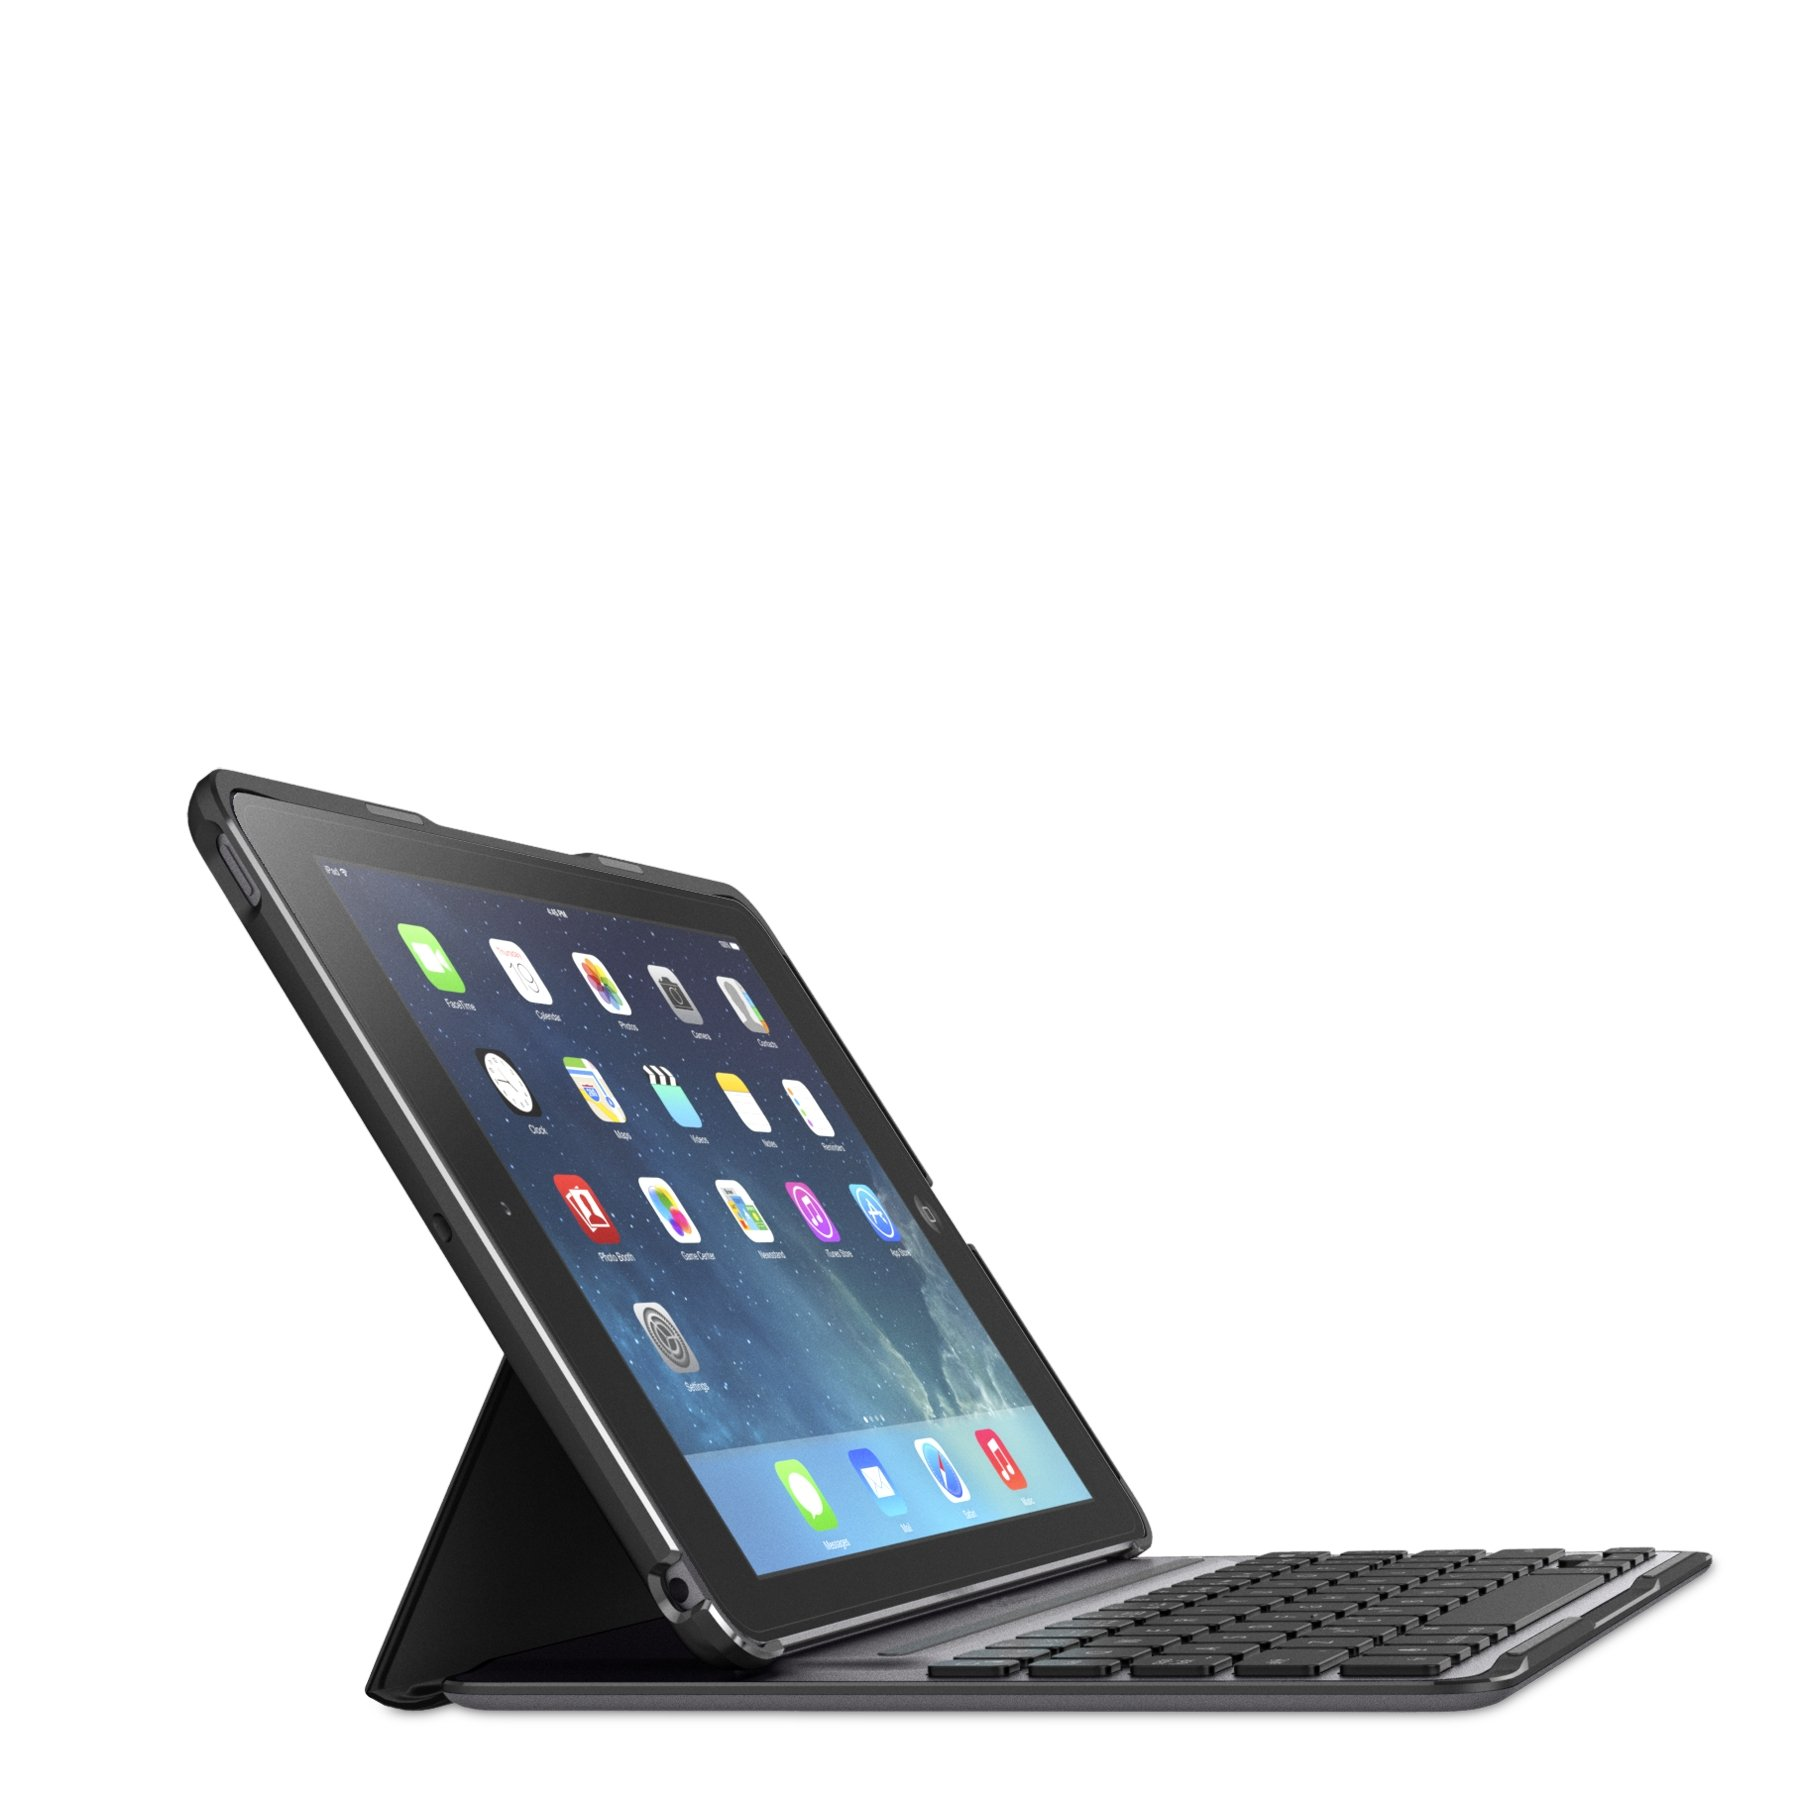 Belkin QODE Ultimate Pro Keyboard Case for iPad Air (Black) by Belkin